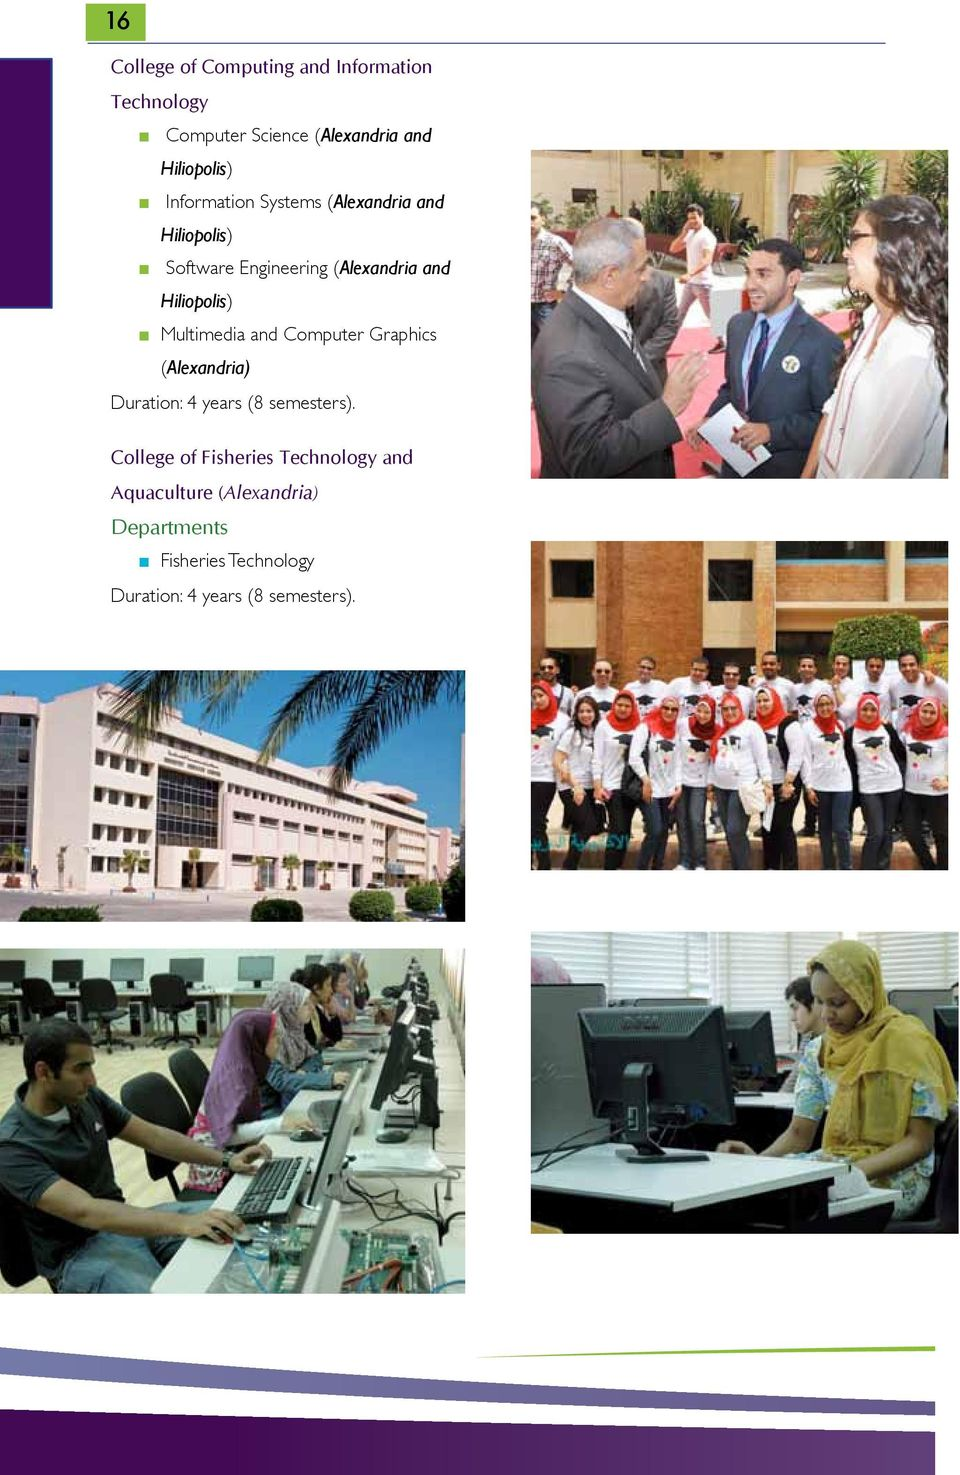 Multimedia and Computer Graphics (Alexandria) Duration: 4 years (8 semesters).